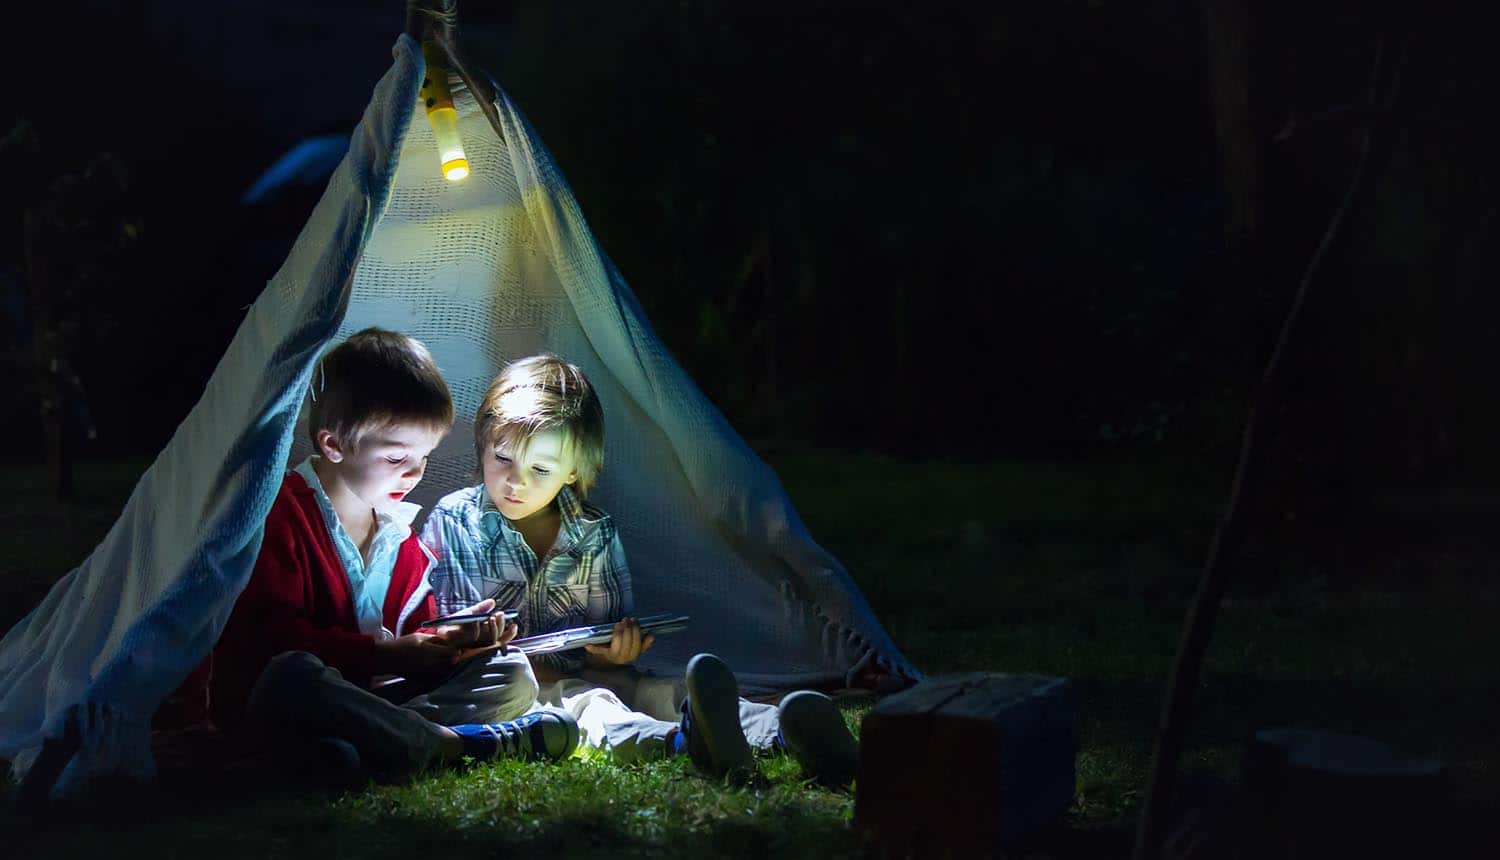 Children using tablet and mobile phone at night in campside showing need for digital identity and age verification